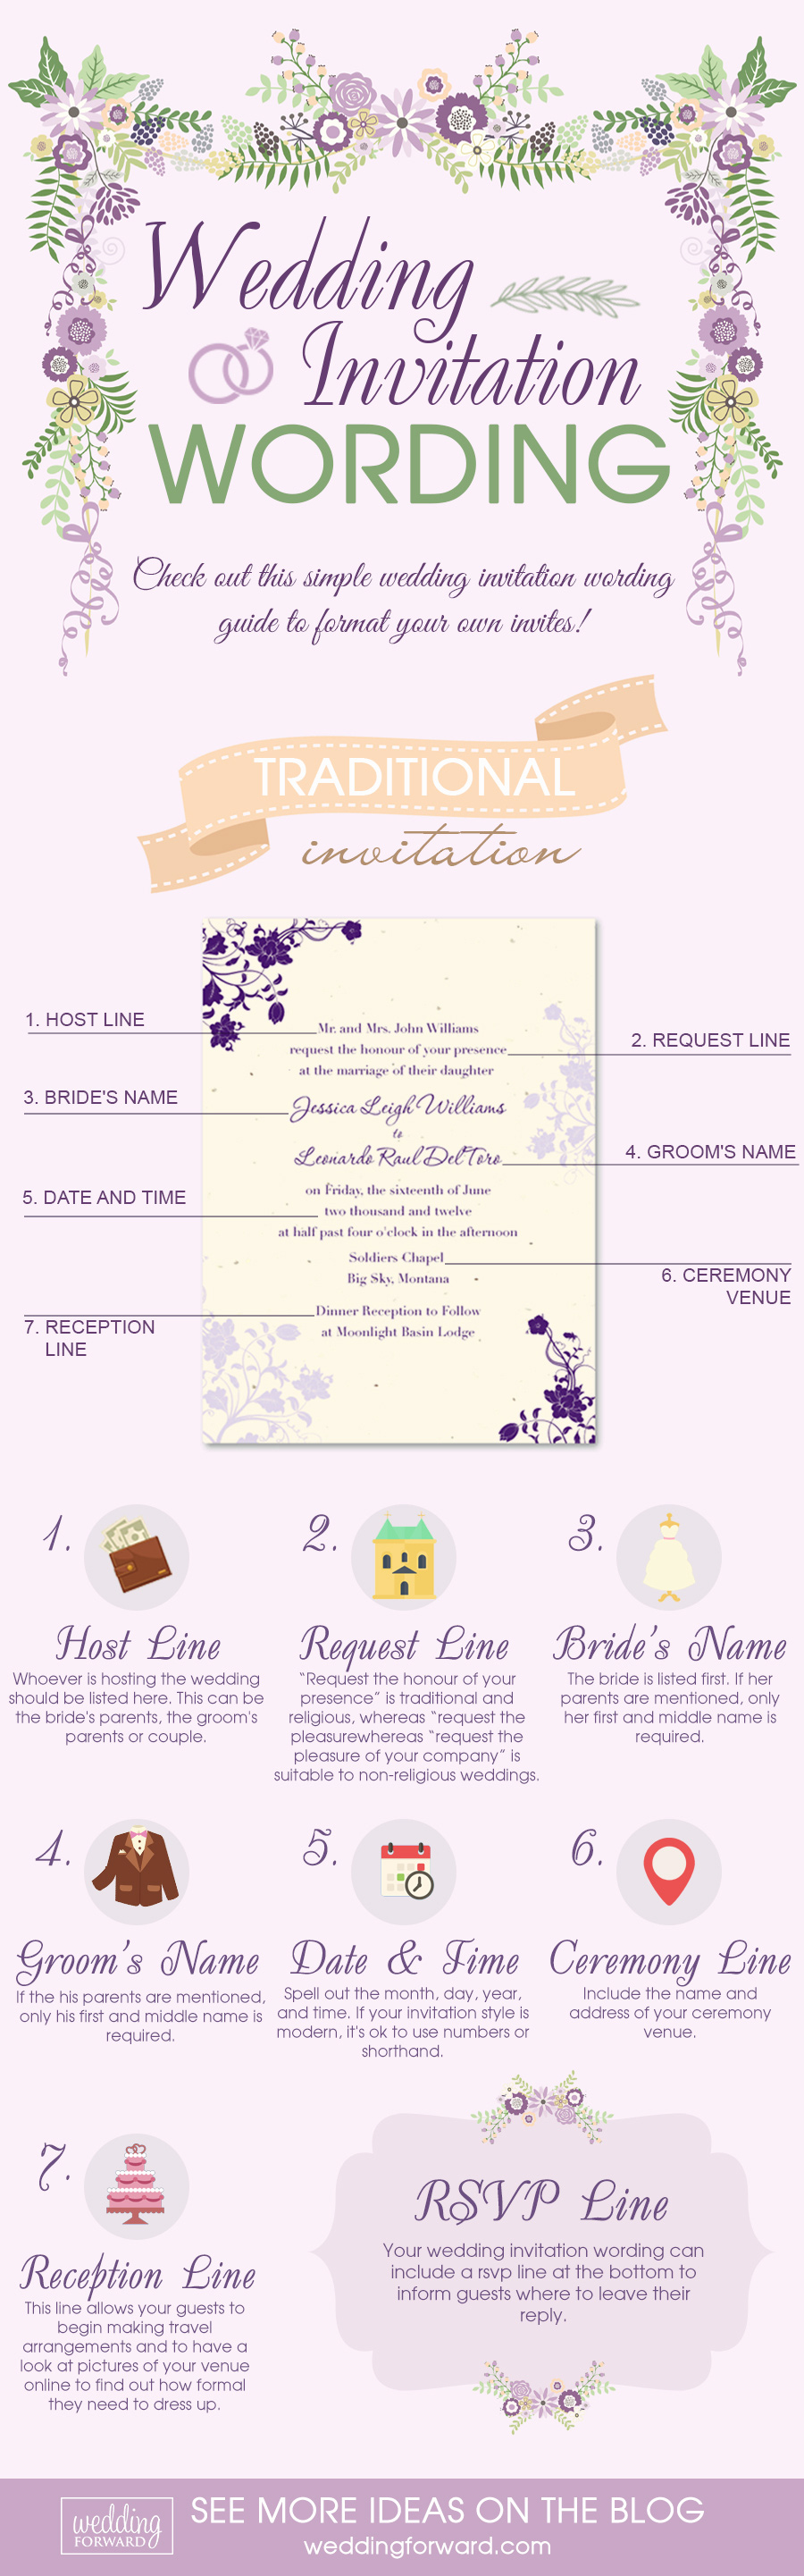 how-to-address-wedding-invitations-wording-infographic-plaza